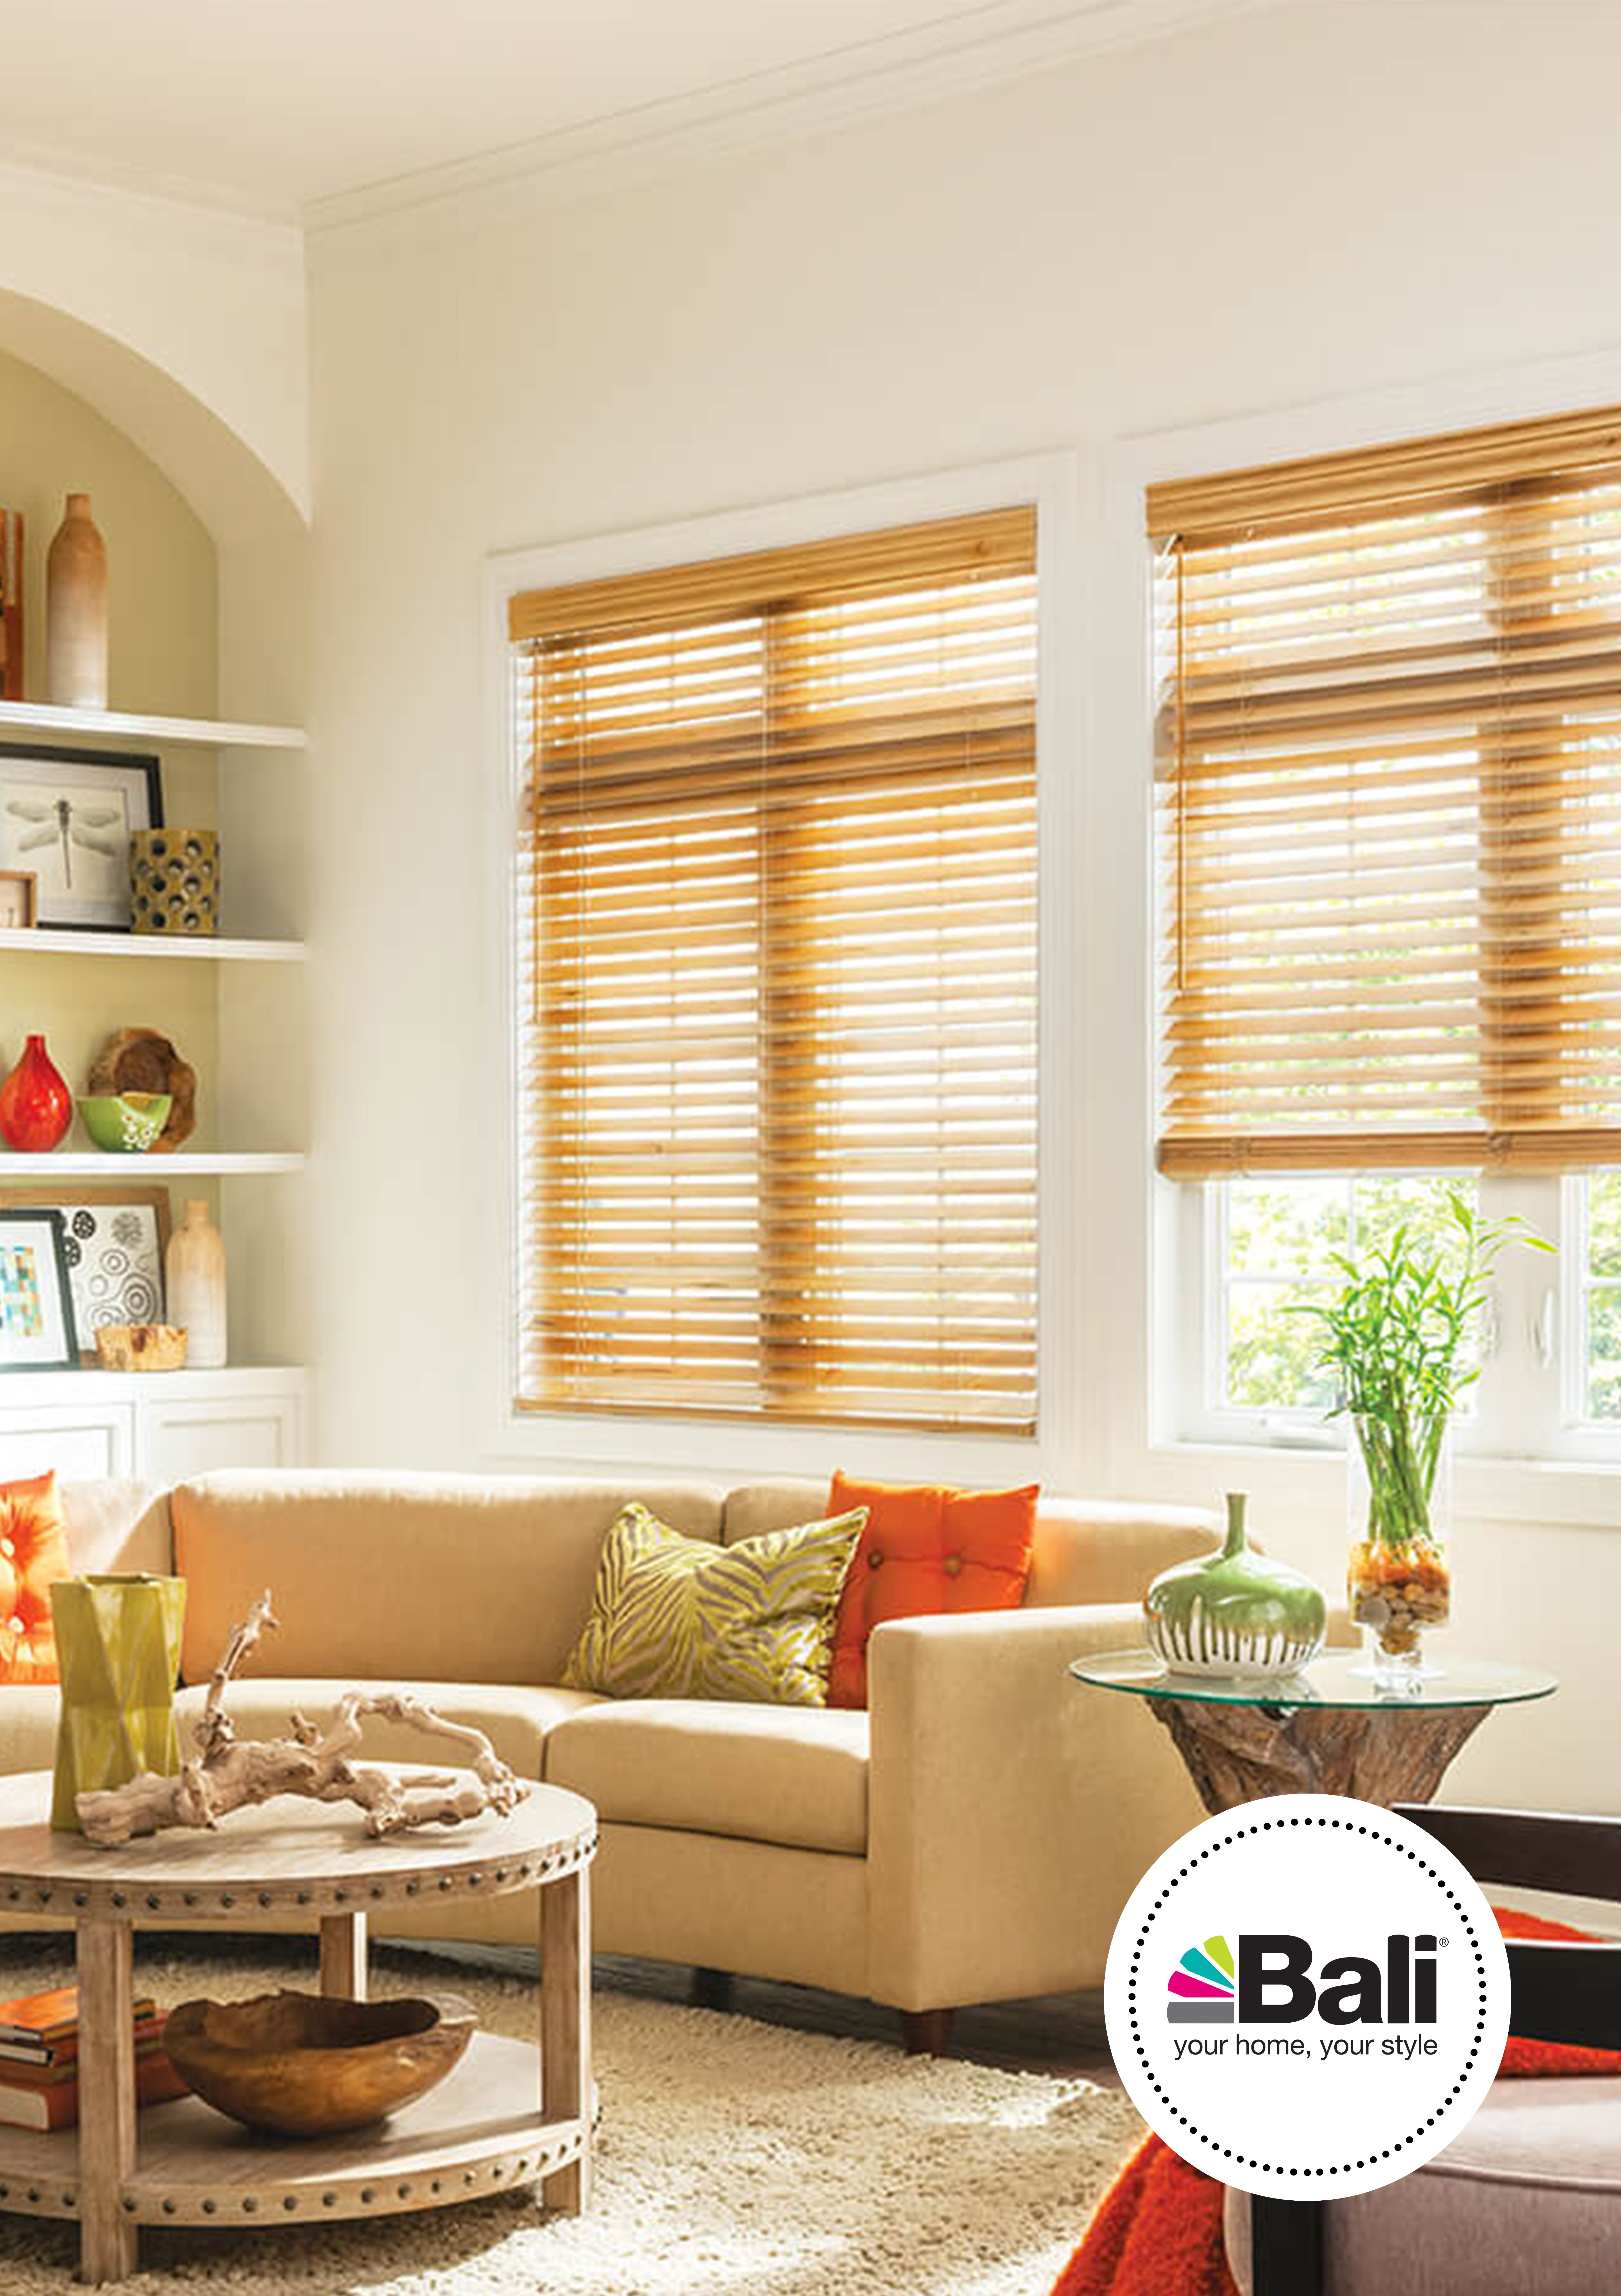 what lowes returns cordless gorgeous are valance faux blind inch white valence treatments ideas clips terrific and on cordlessfauxwoodblind wood blinds window ts